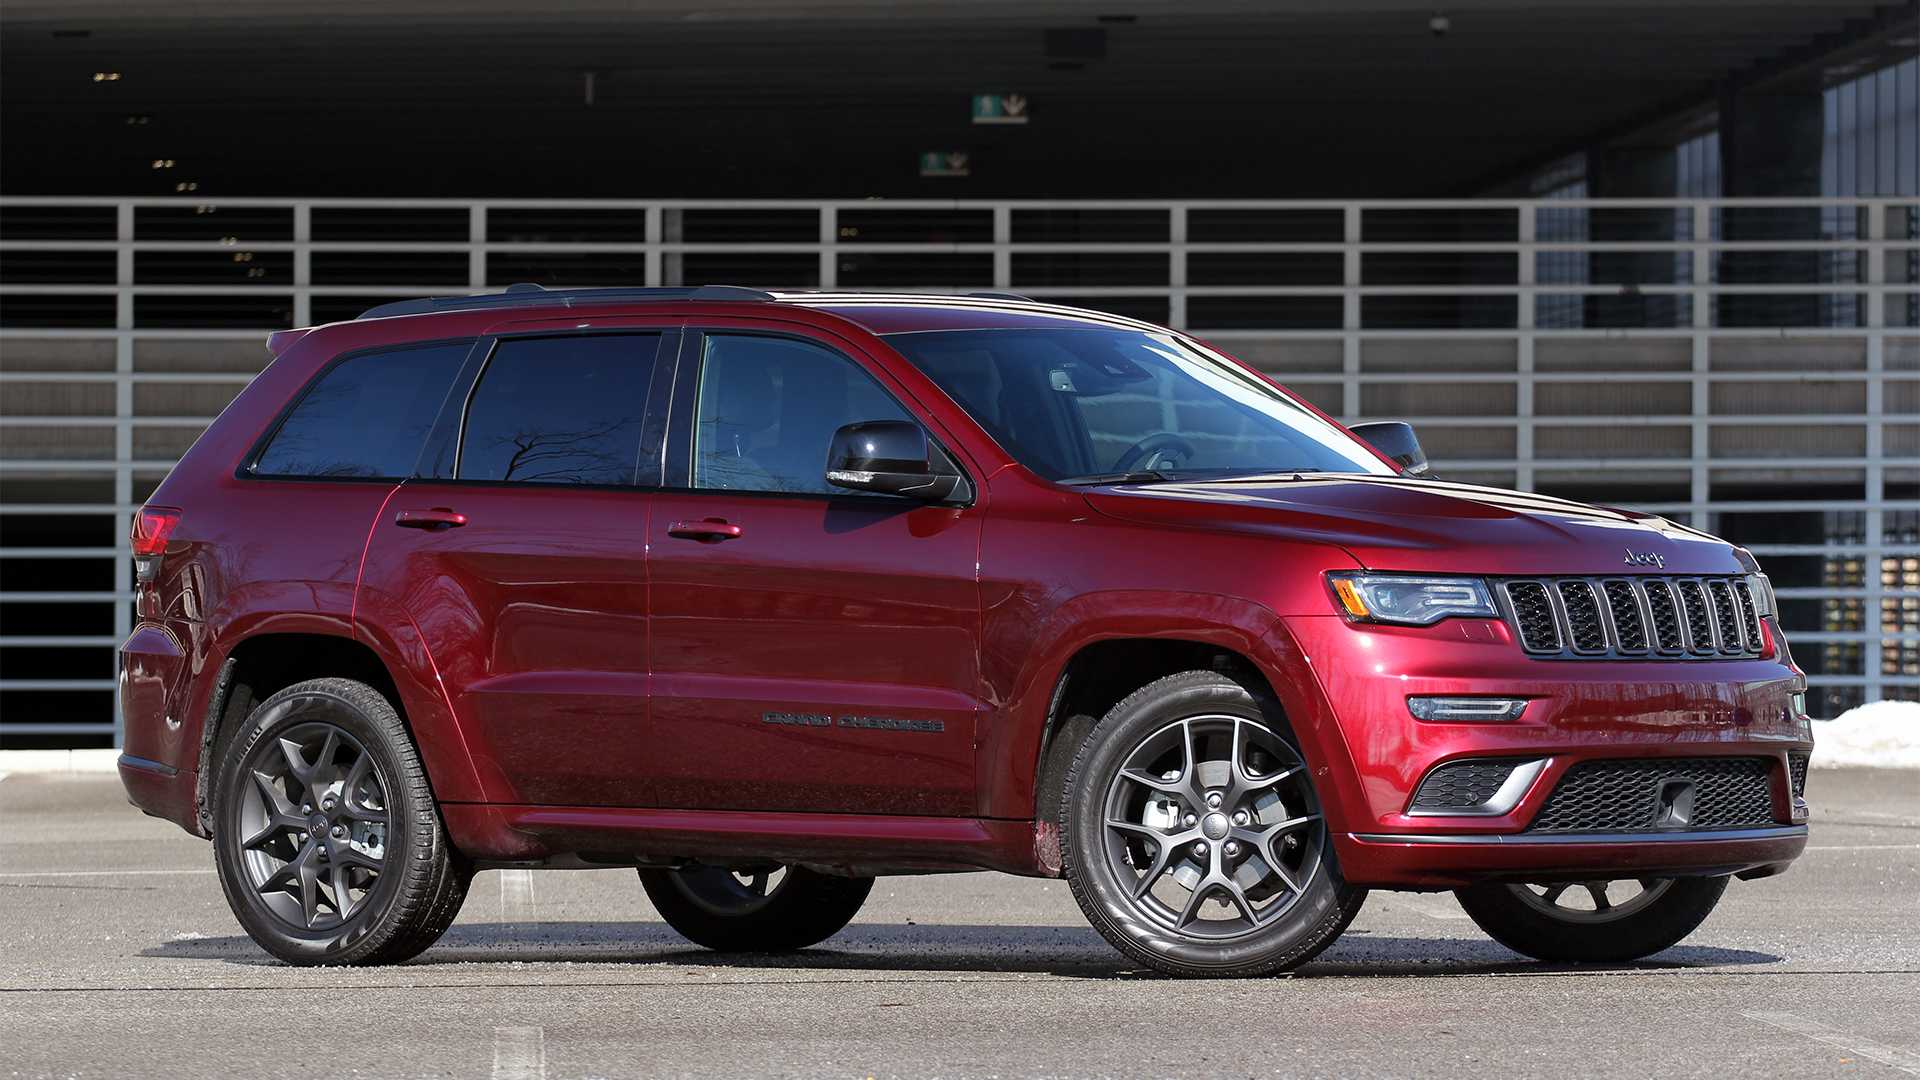 73 The Best 2019 Jeep Grand Cherokee Picture